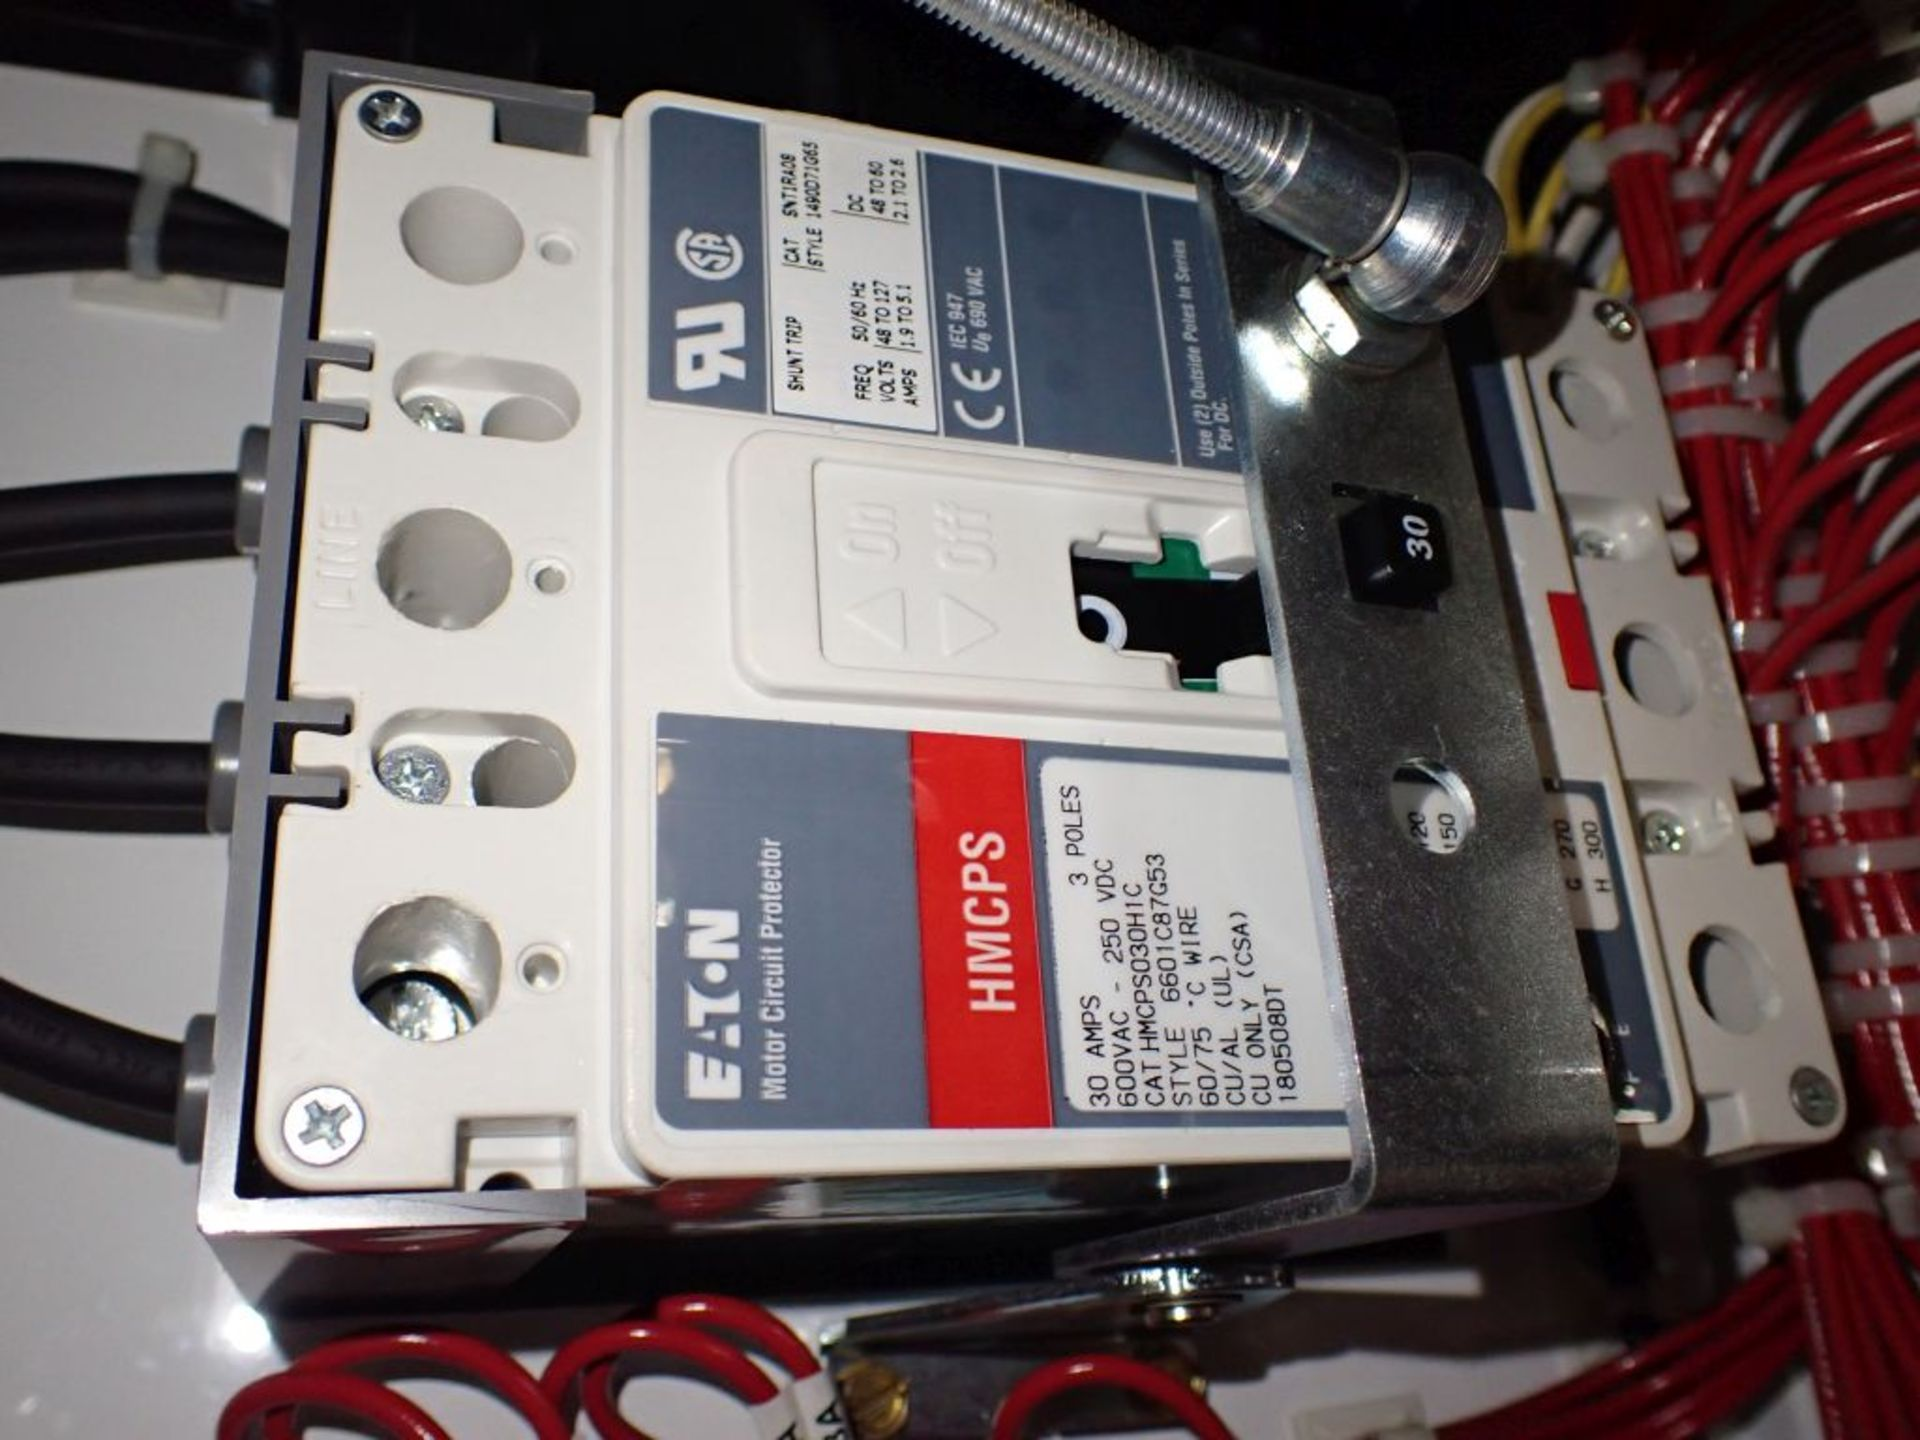 Eaton Freedom 2100 Series Motor Control Center | (11) F206-30A-10HP; (5) F206-15A-10HP; (1) SVX900- - Image 39 of 102